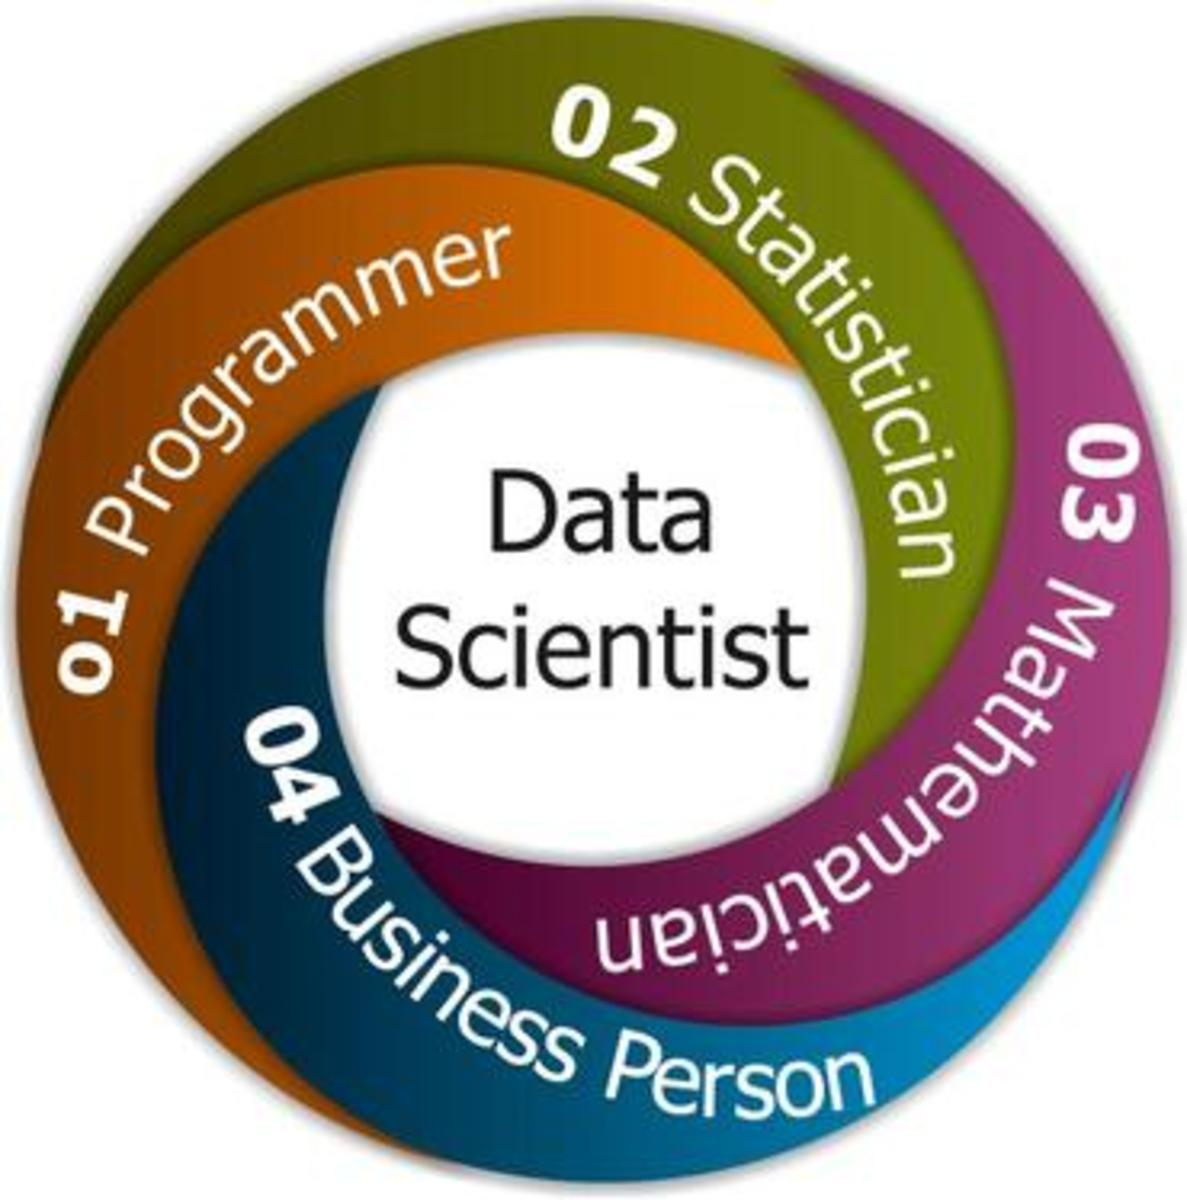 A career as a Data Scientist is one of the hottest careers of the 21st Century, as businesses find great value in understanding big data.